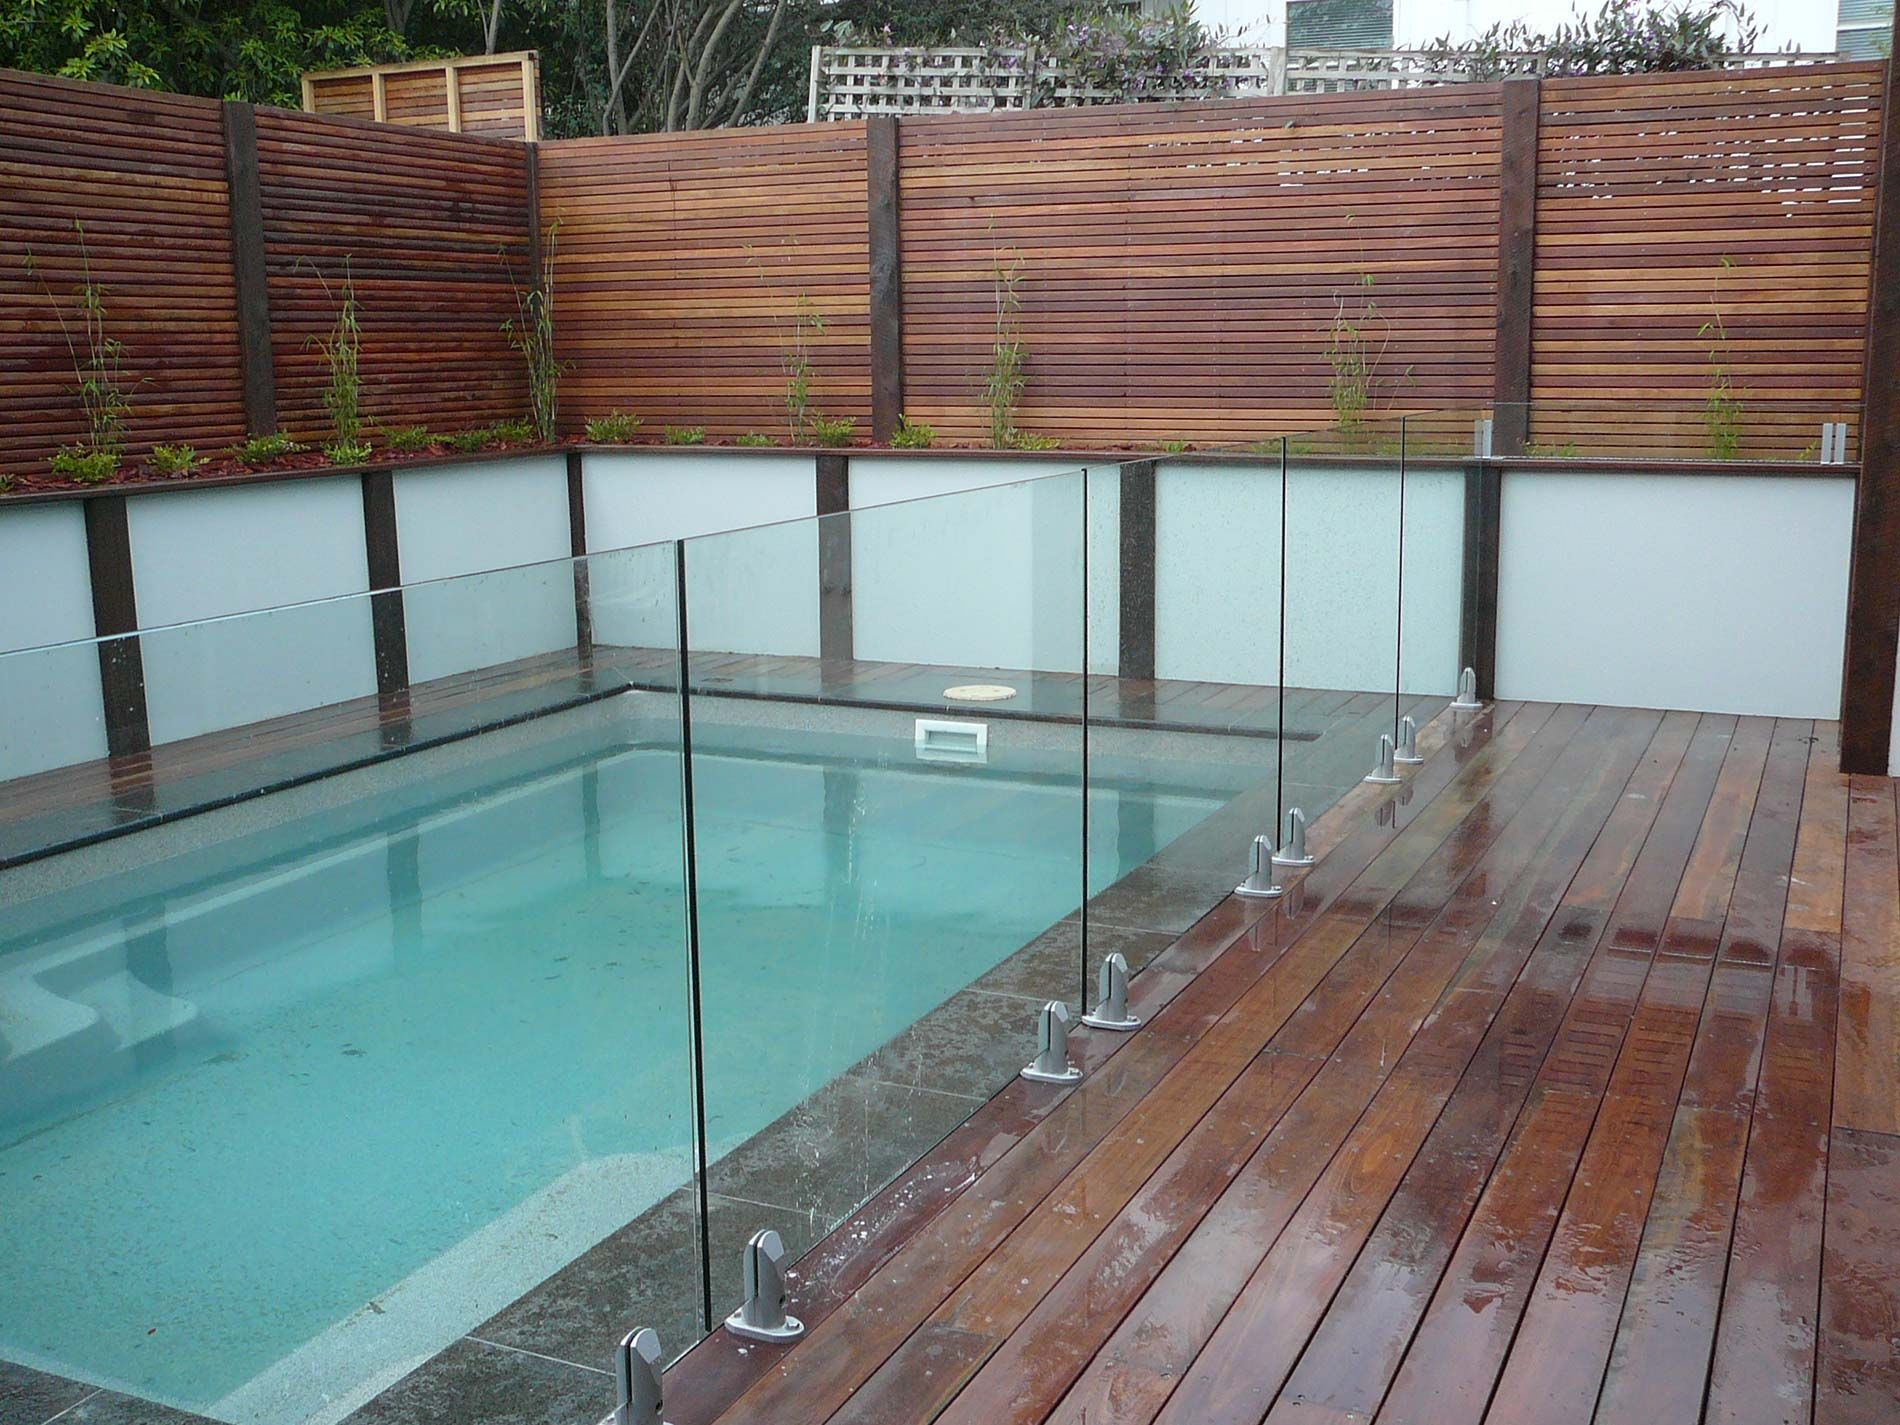 Designer Glass Pool Fencing Frameless glass pool fence fixed with spigots frameless glass pool frameless glass pool fence fixed with spigots frameless glass pool fence pinterest glass pool fencing glass pool and fences workwithnaturefo